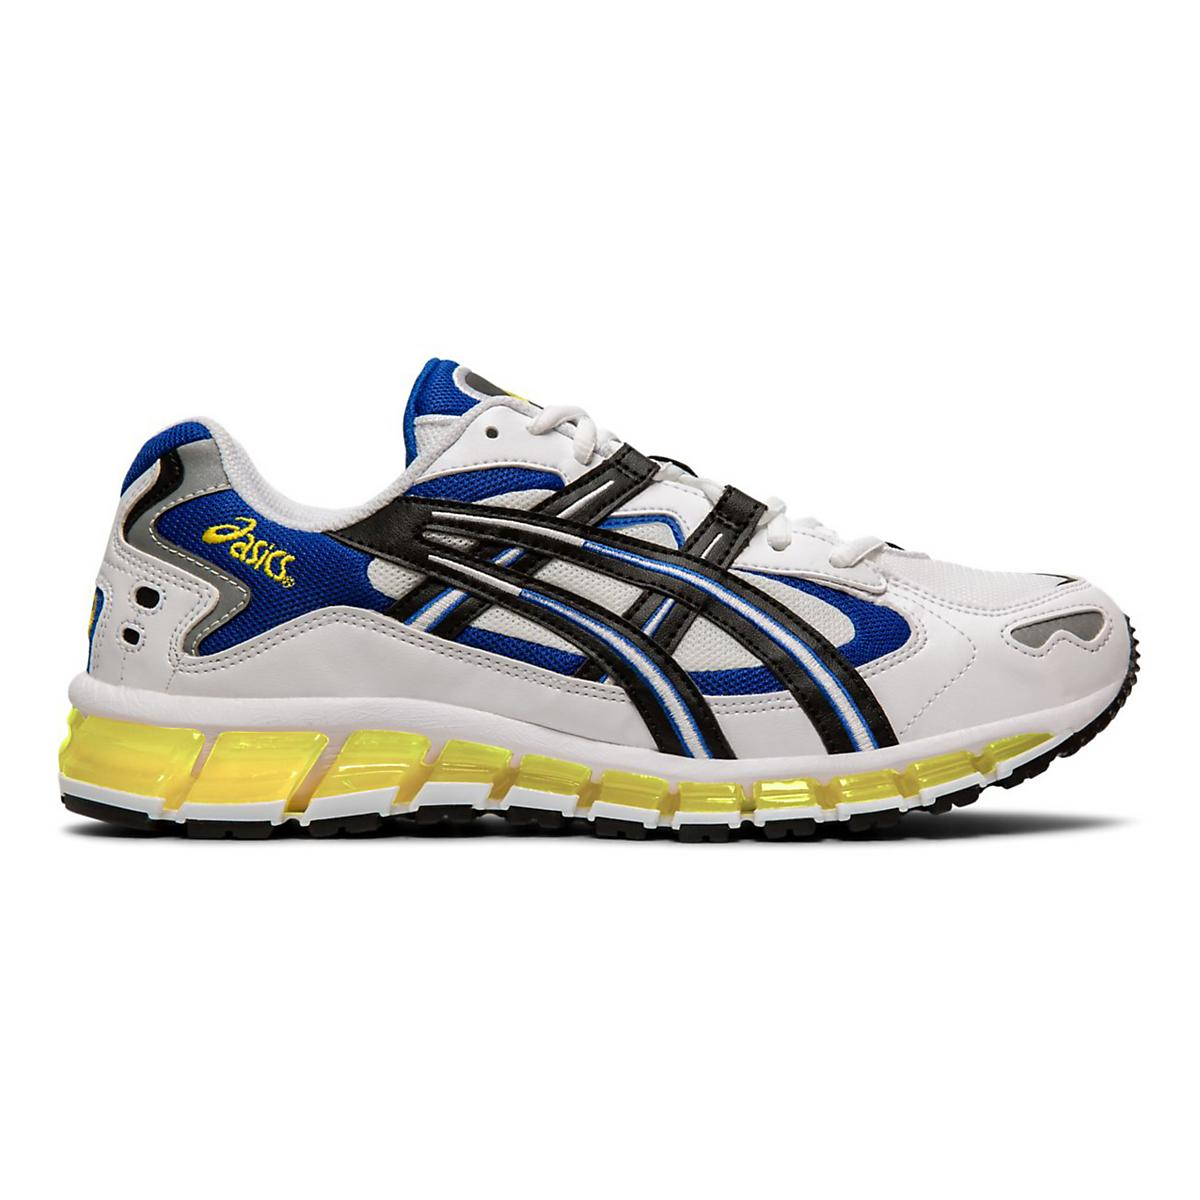 Men's GEL-Kayano 5 360